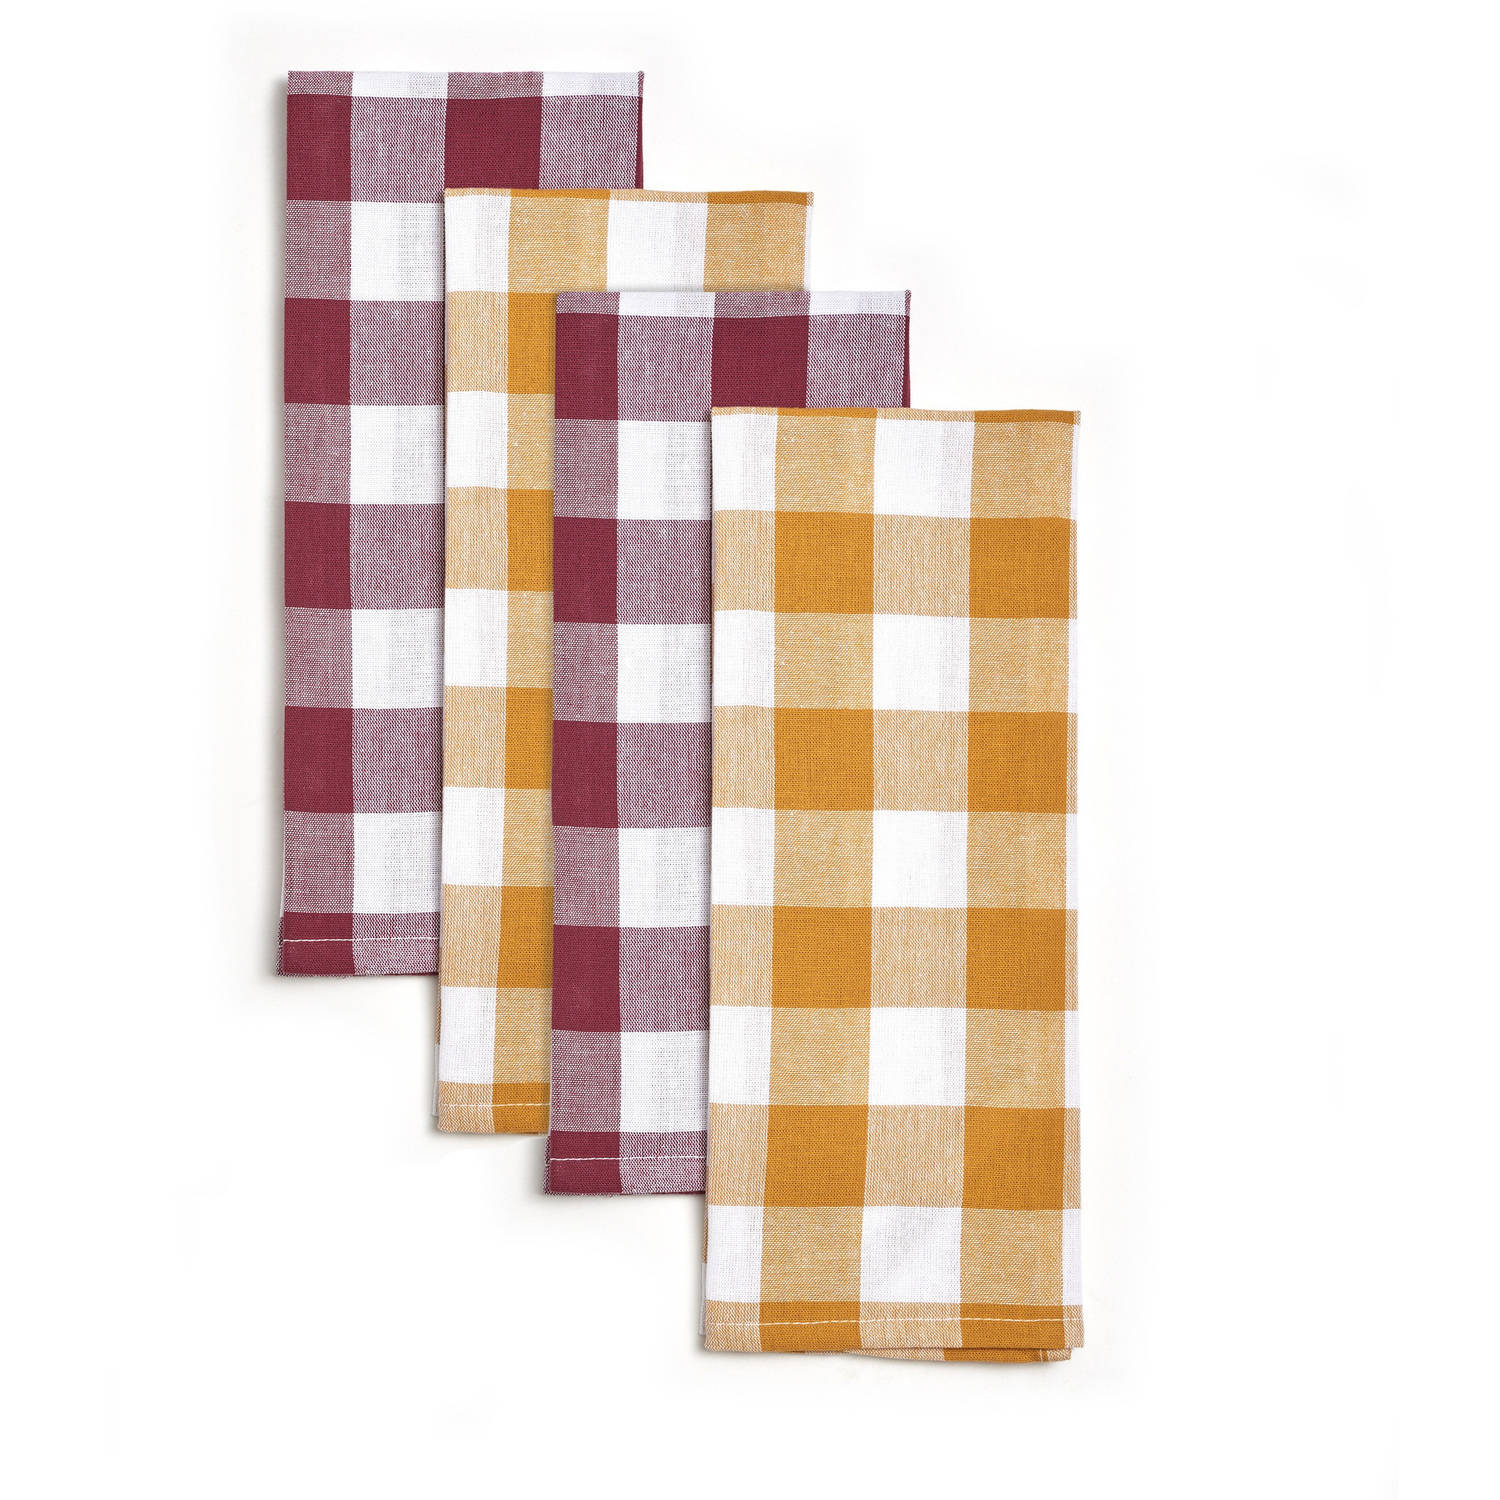 Pioneer Woman Charming Check Kitchen Towels, Set of 4